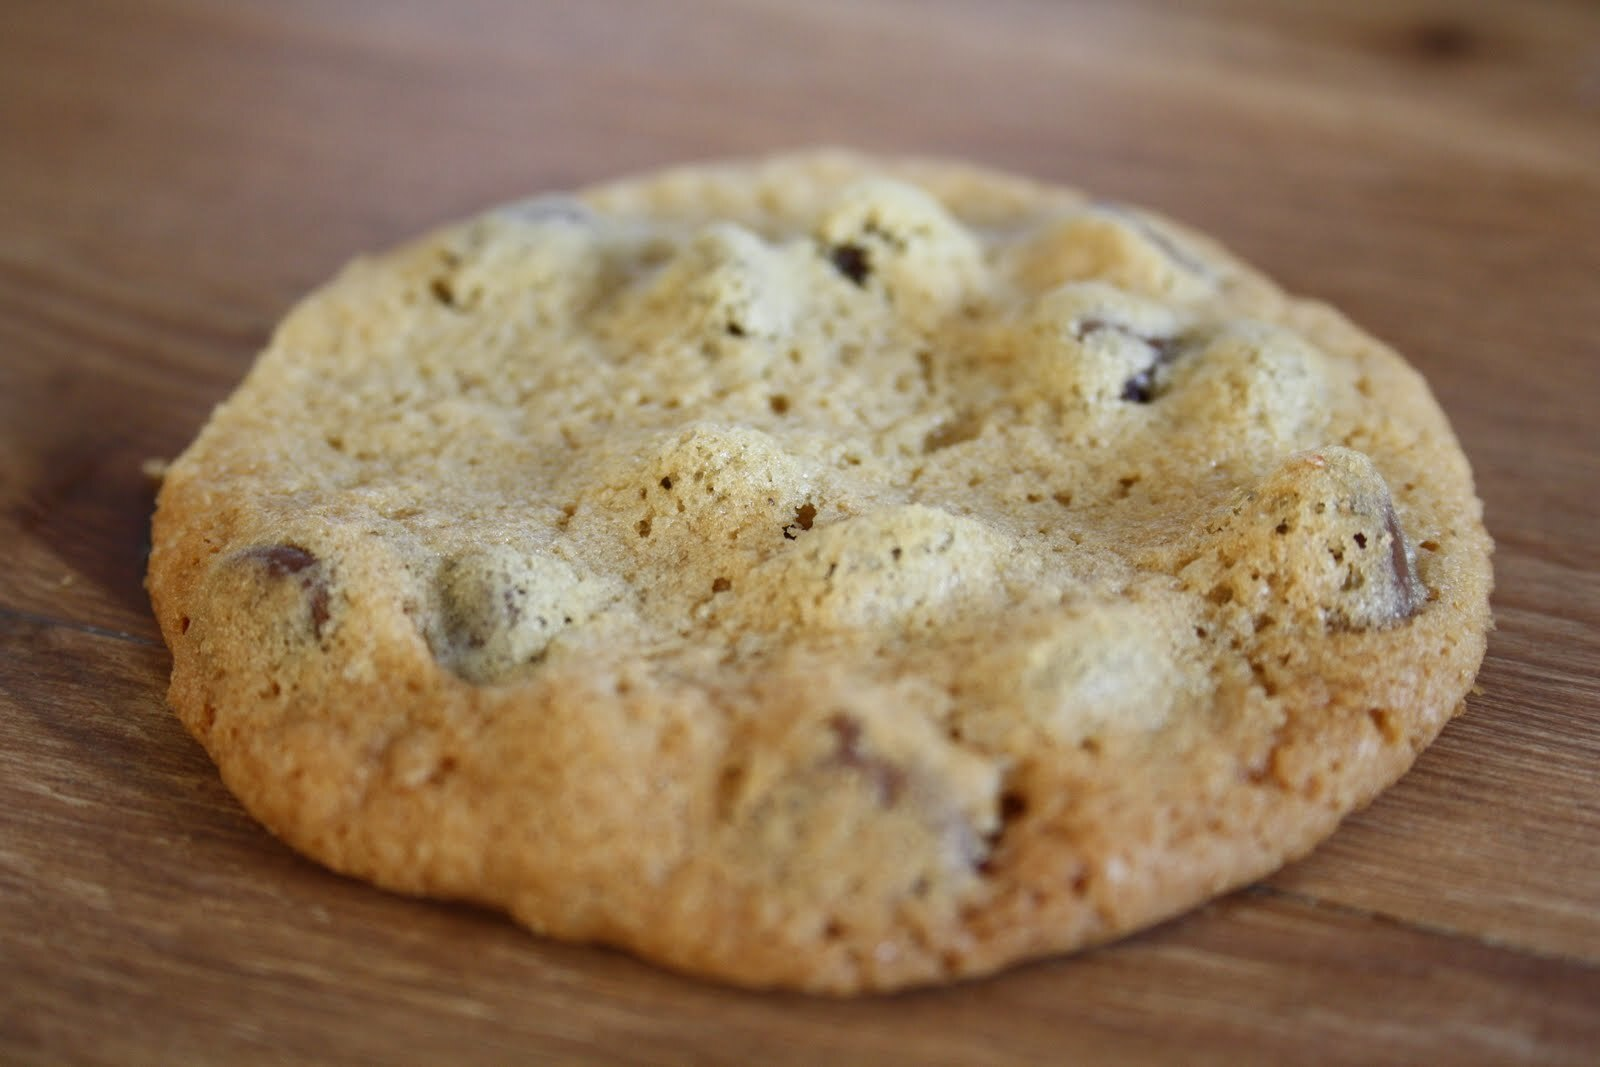 Chocolate chip cookies - the real thing